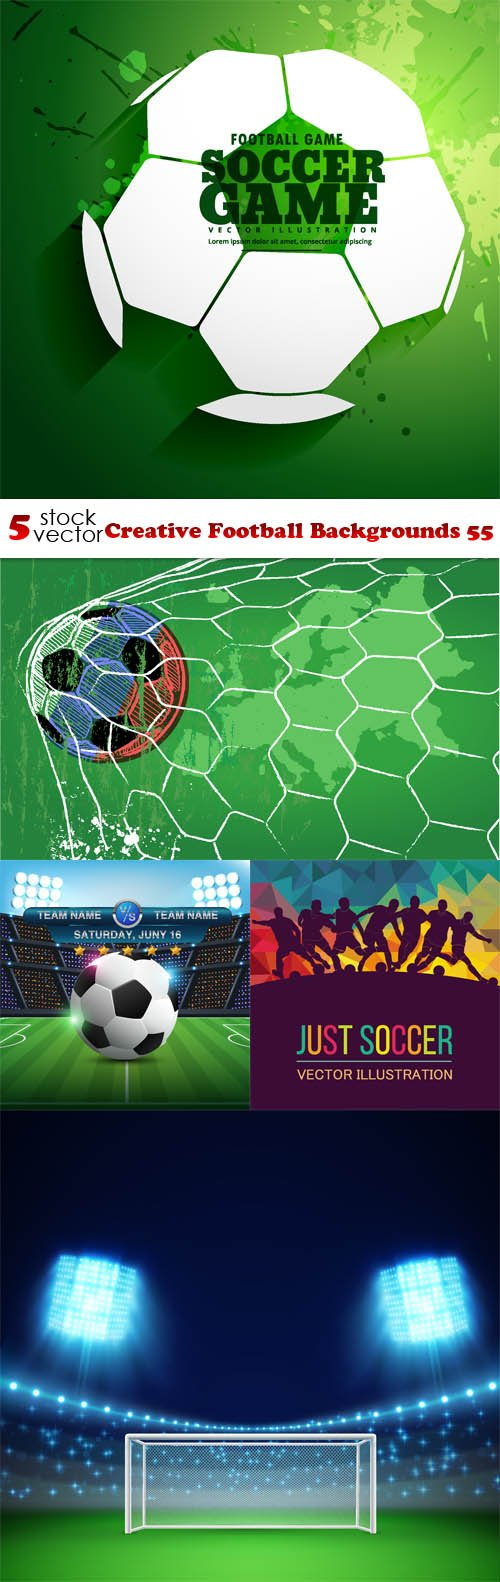 Vectors - Creative Football Backgrounds 55